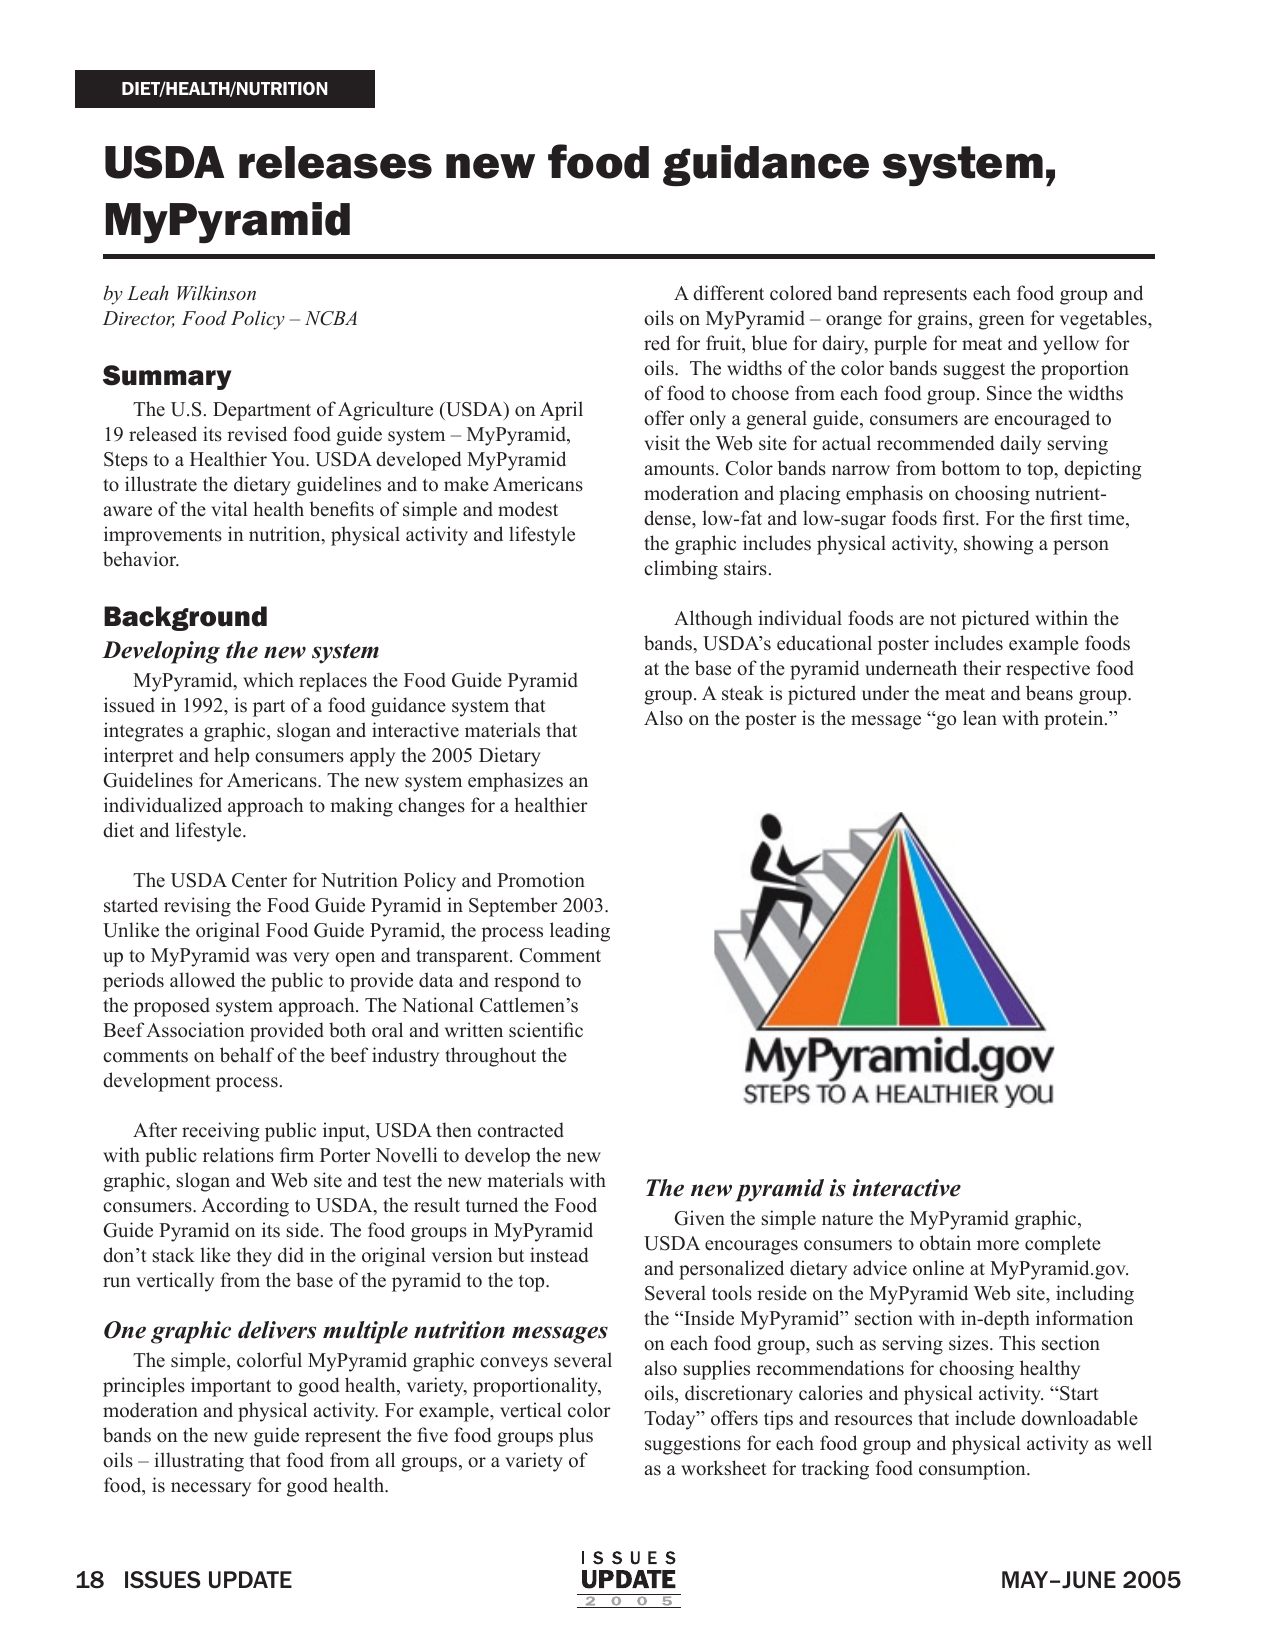 Worksheets Mypyramid Worksheet usda releases new food guidance system mypyramid